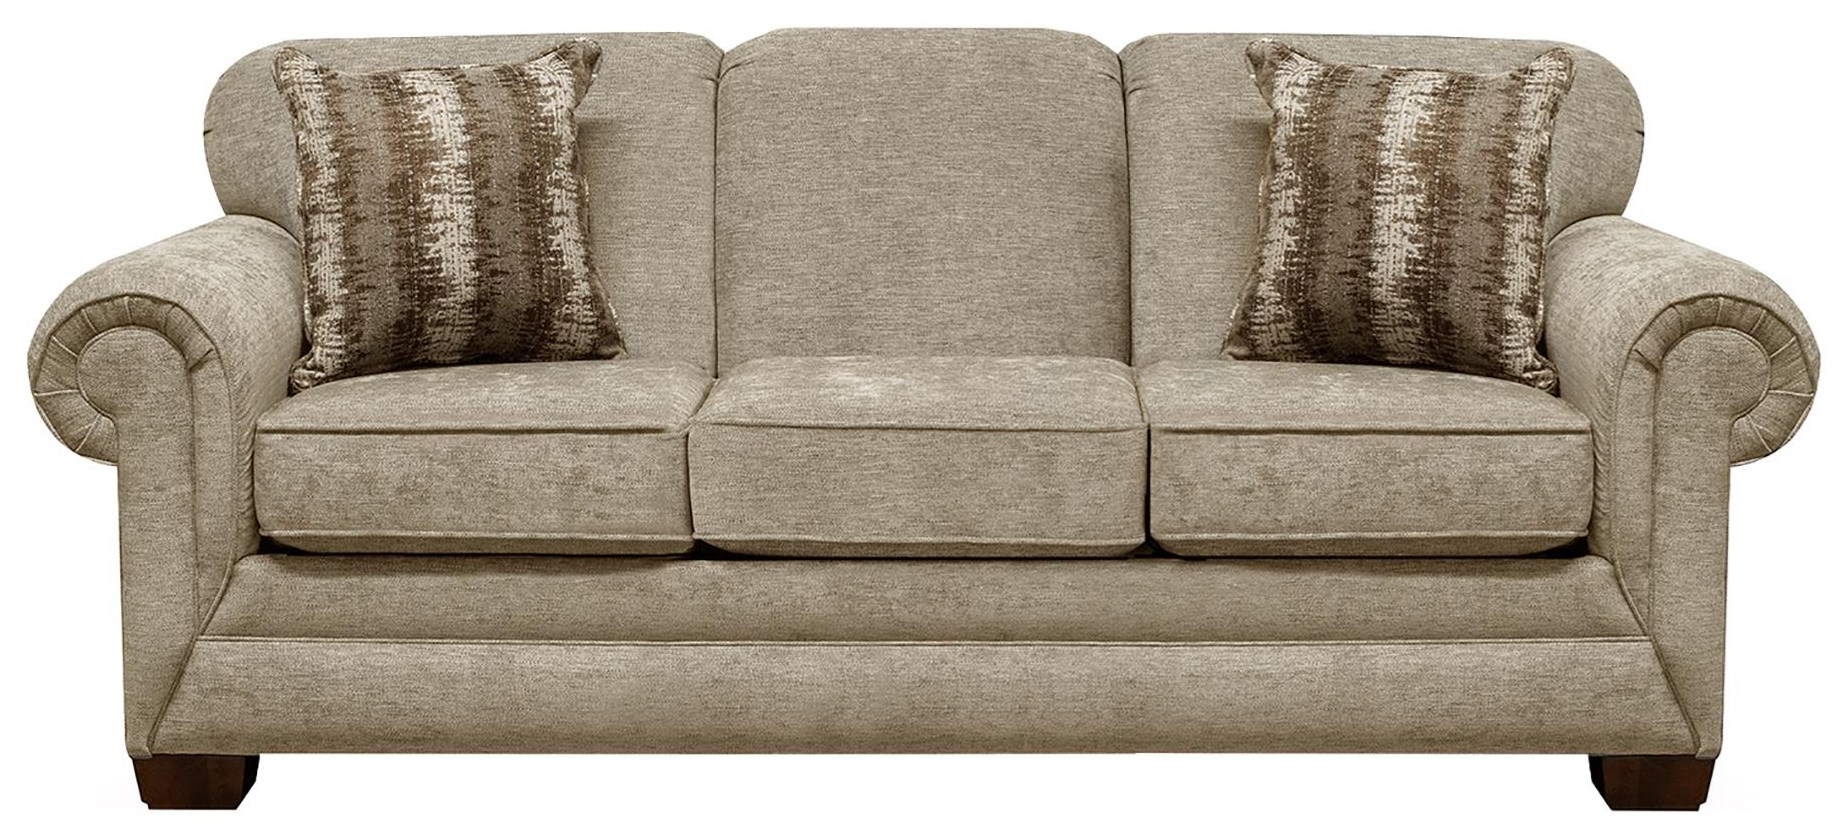 42504 Queen Sleeper Sofa by England at Sadler's Home Furnishings